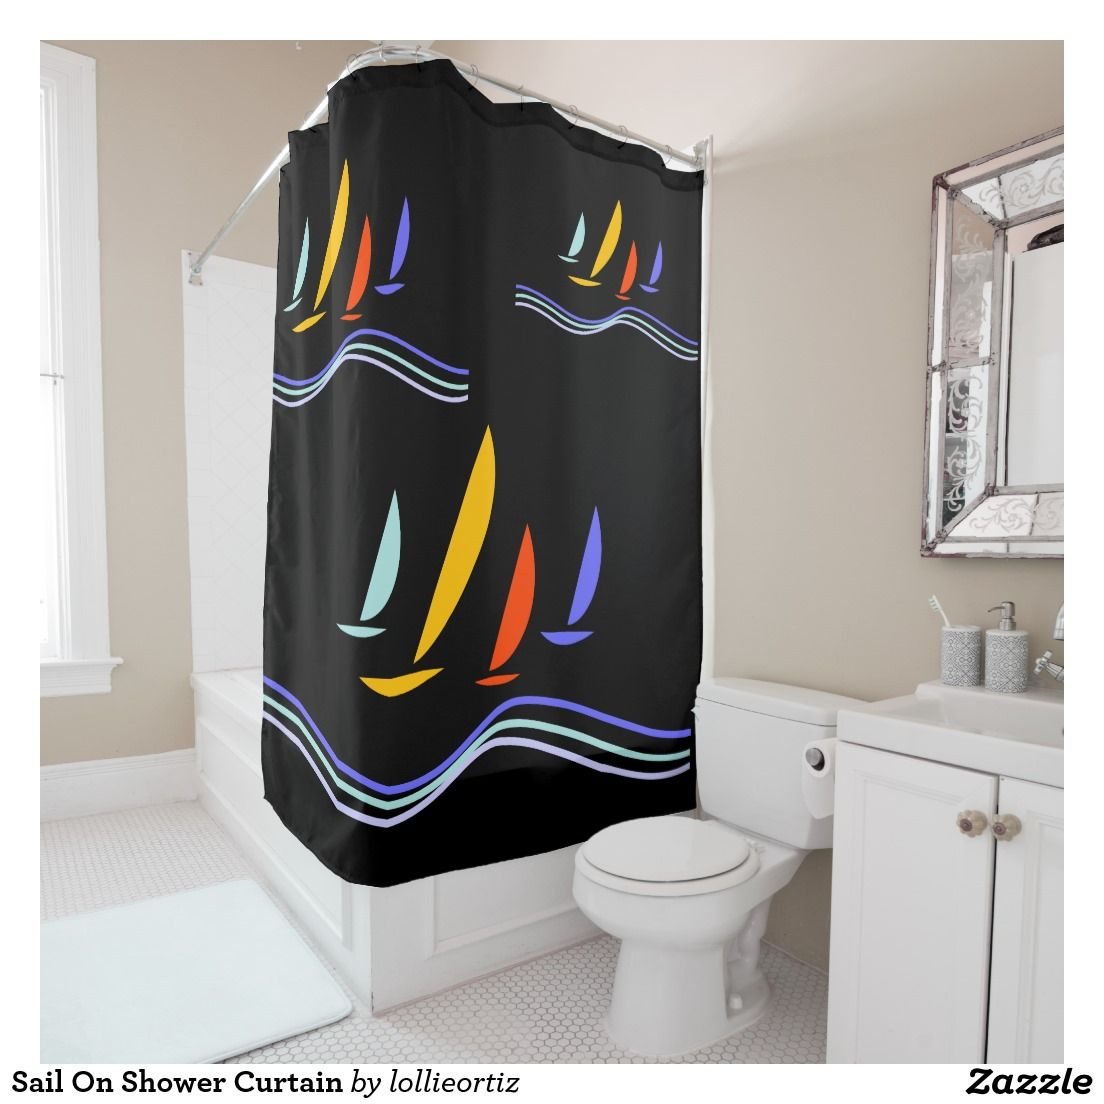 Sail On Shower Curtain Zazzle Com Shower Curtain Curtains Shower